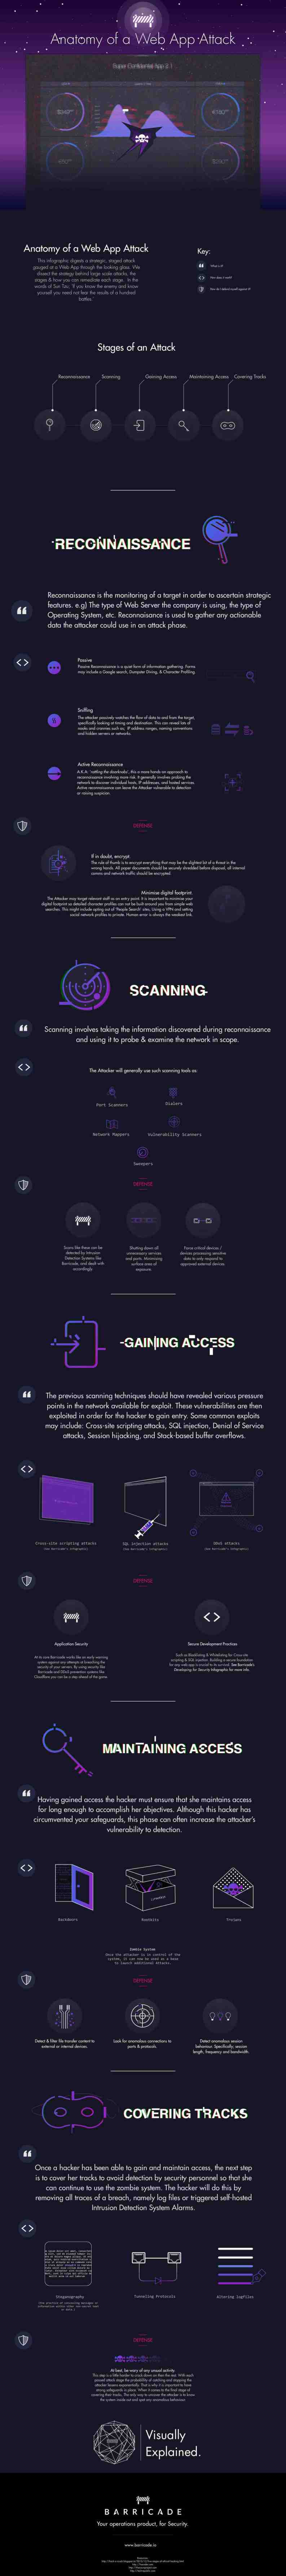 Web-App-Attack-Infographic-Compressed-